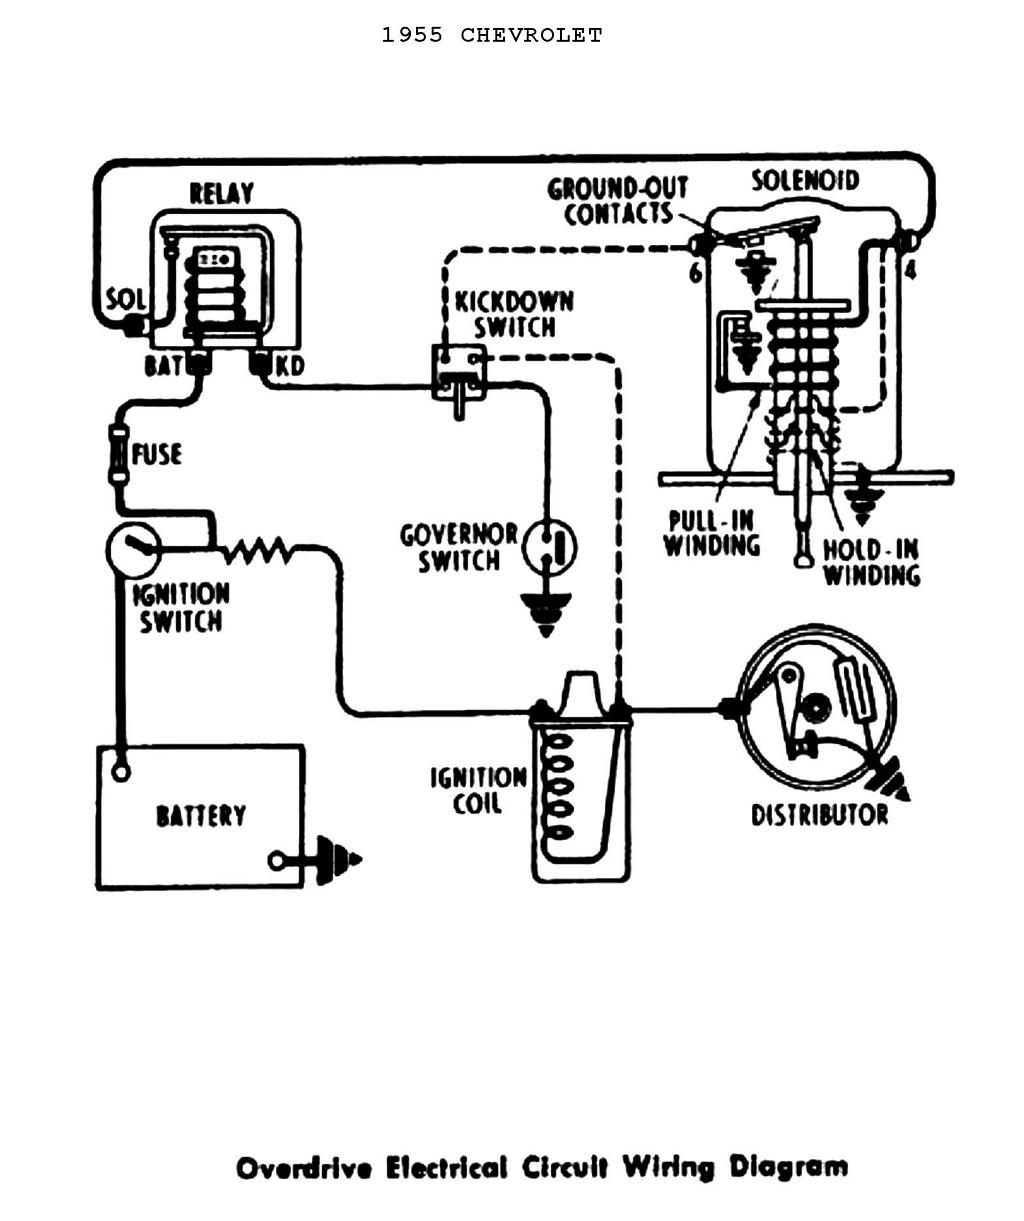 hight resolution of chevrolet distributor wiring diagram wiring diagramschevy hei distributor wiring diagram free wiring diagram chevy 454 distributor